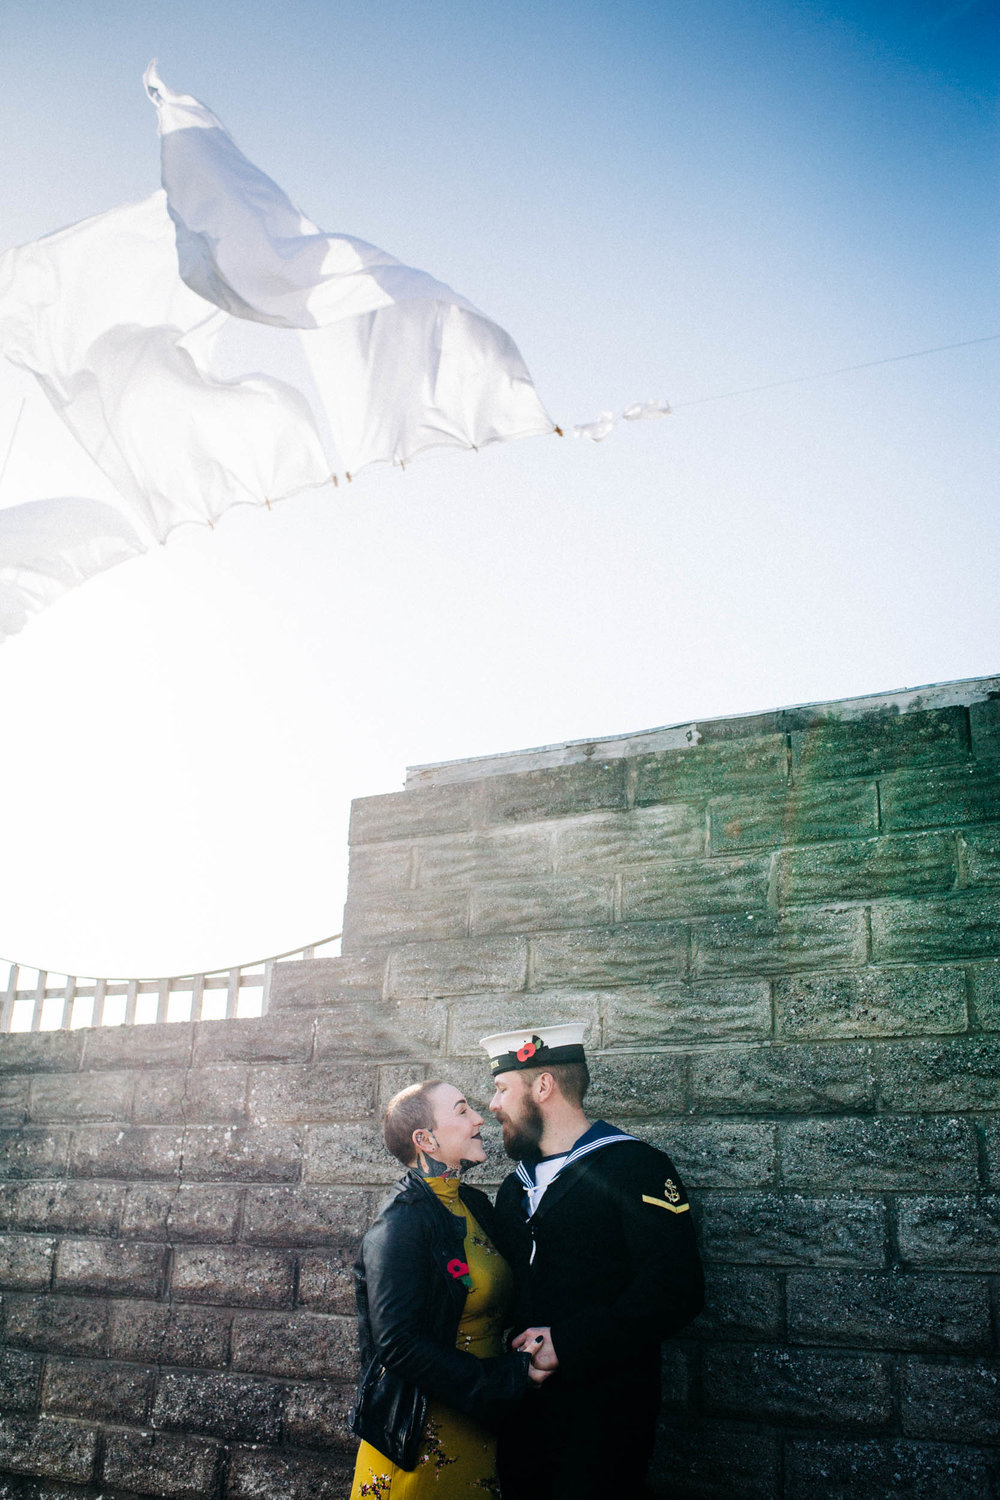 Alex_Sedgmond_Photography-SouthWalesWeddingPhotography-Wedding-Photographer-Cardiff-Holly&Dorian-11.jpg